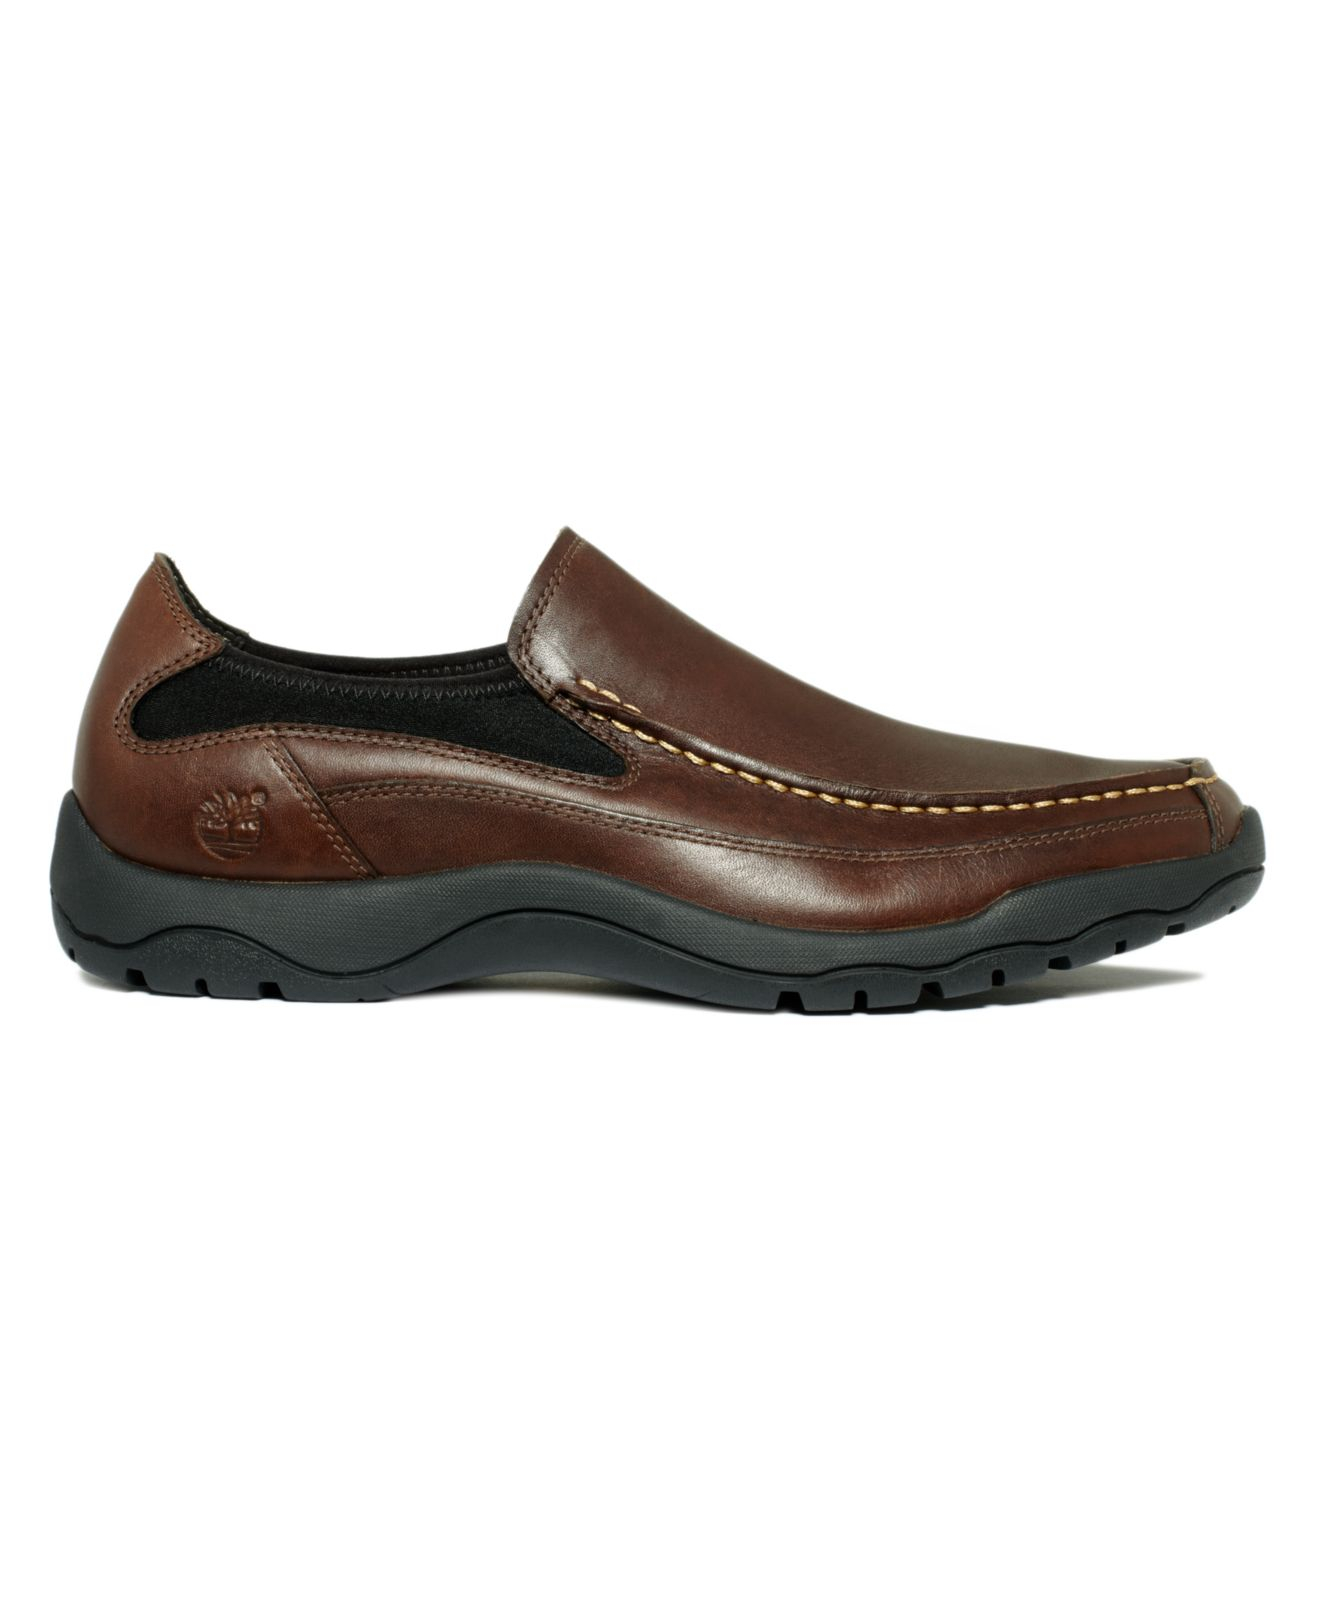 timberland s mt kisco slip on shoes in brown for